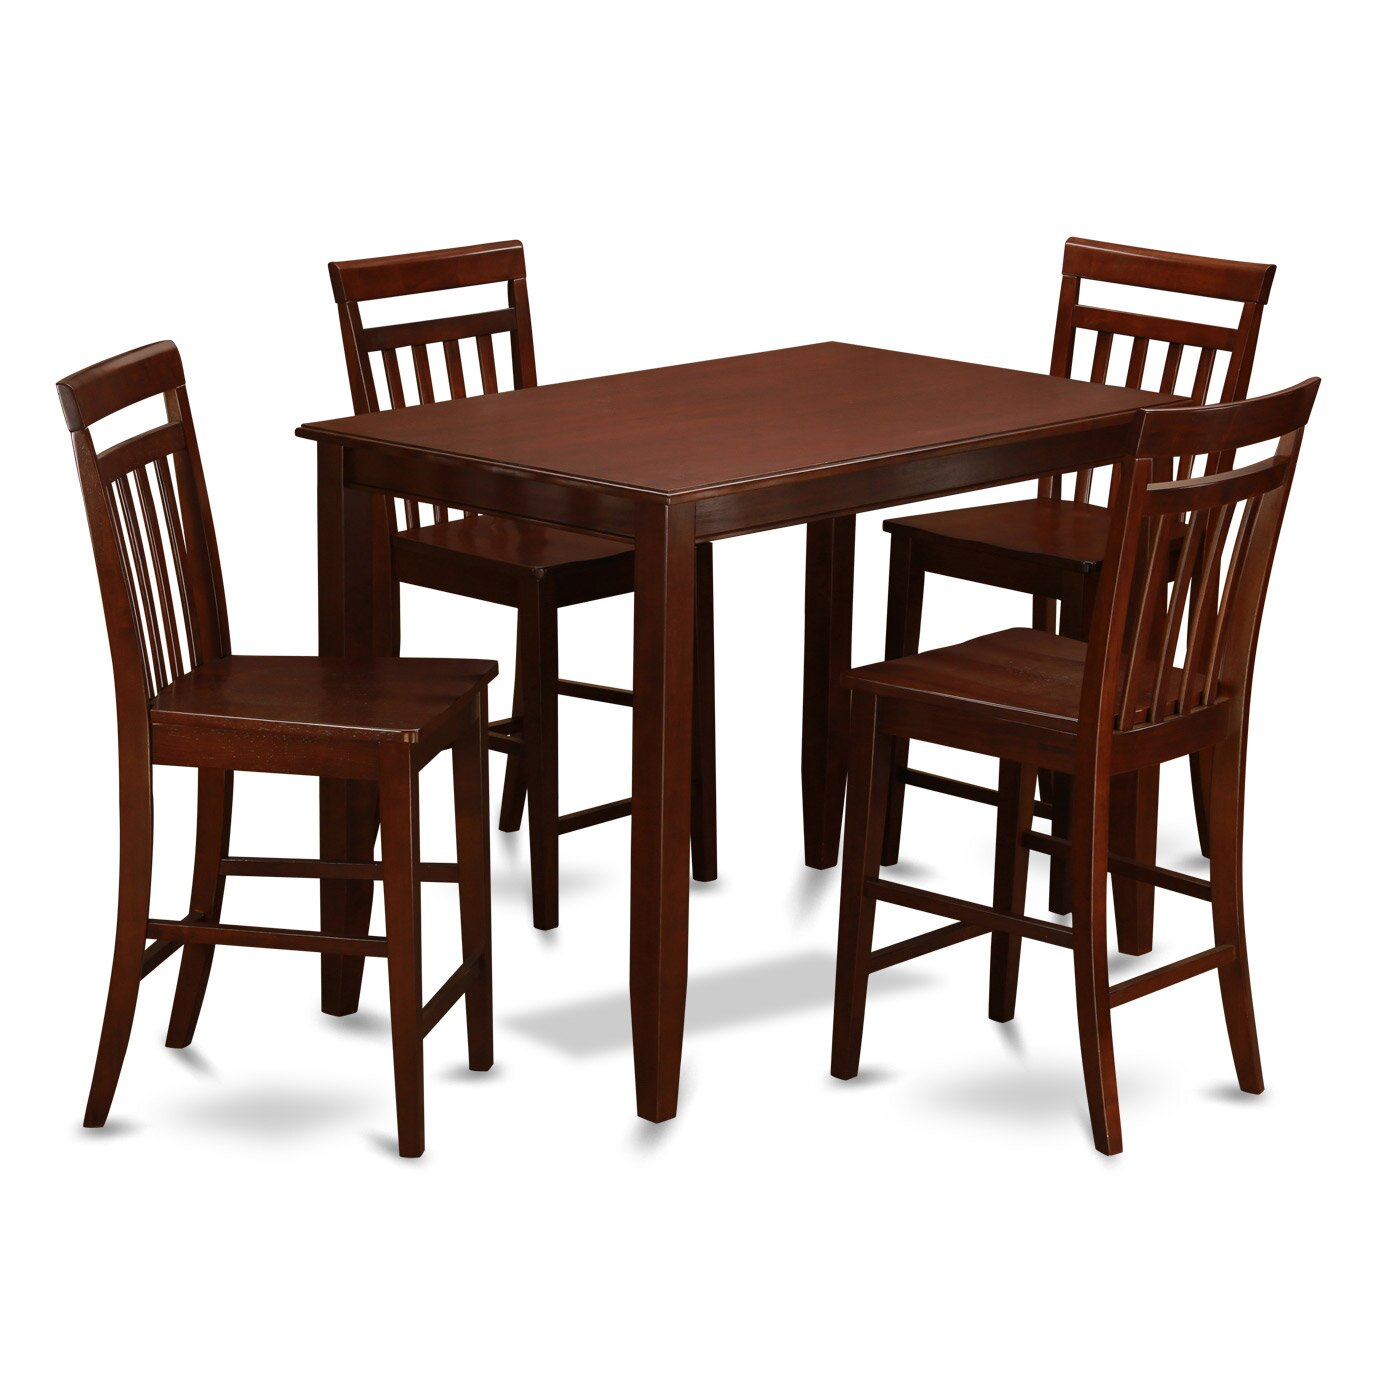 East west buckland 5 piece counter height dining set for What size dining table for 10x12 room